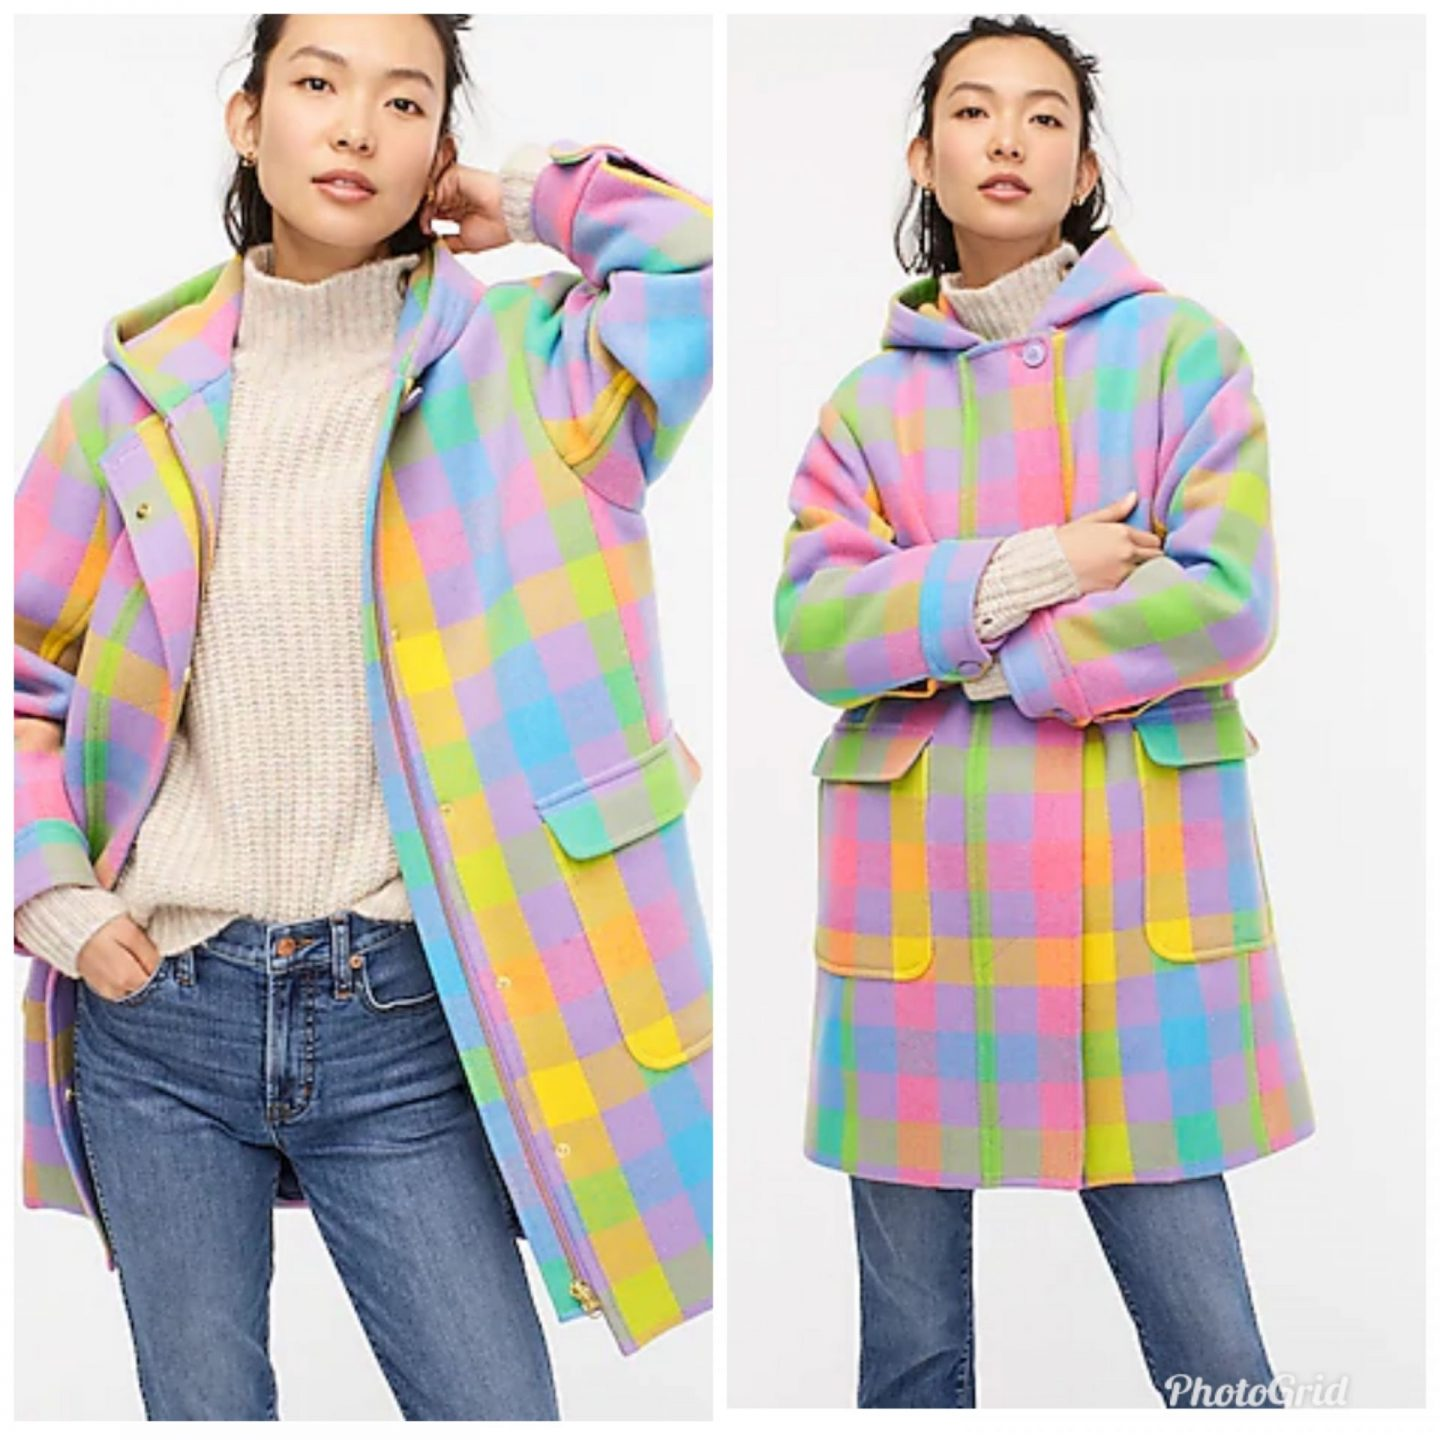 Pink Clothing by popular Kentucky fashion blog, Really Rynetta: image of a woman wearing a plaid pastel color wool coat with a cream mock neck sweater and jeans.